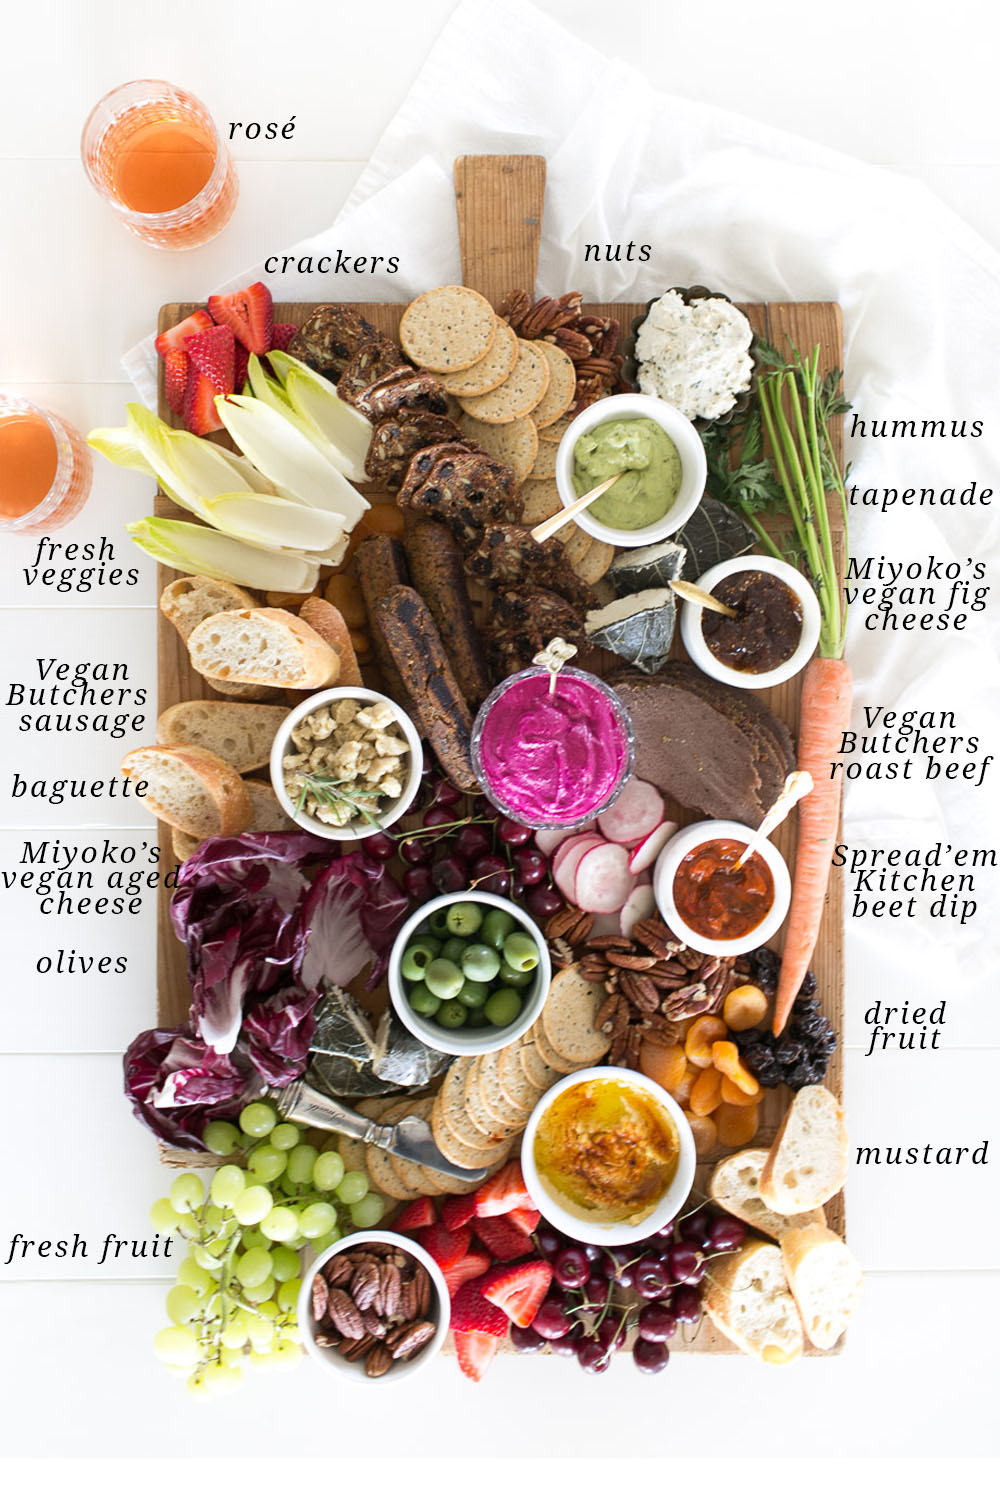 Vegan Charcuterie Board - Jillian Harris